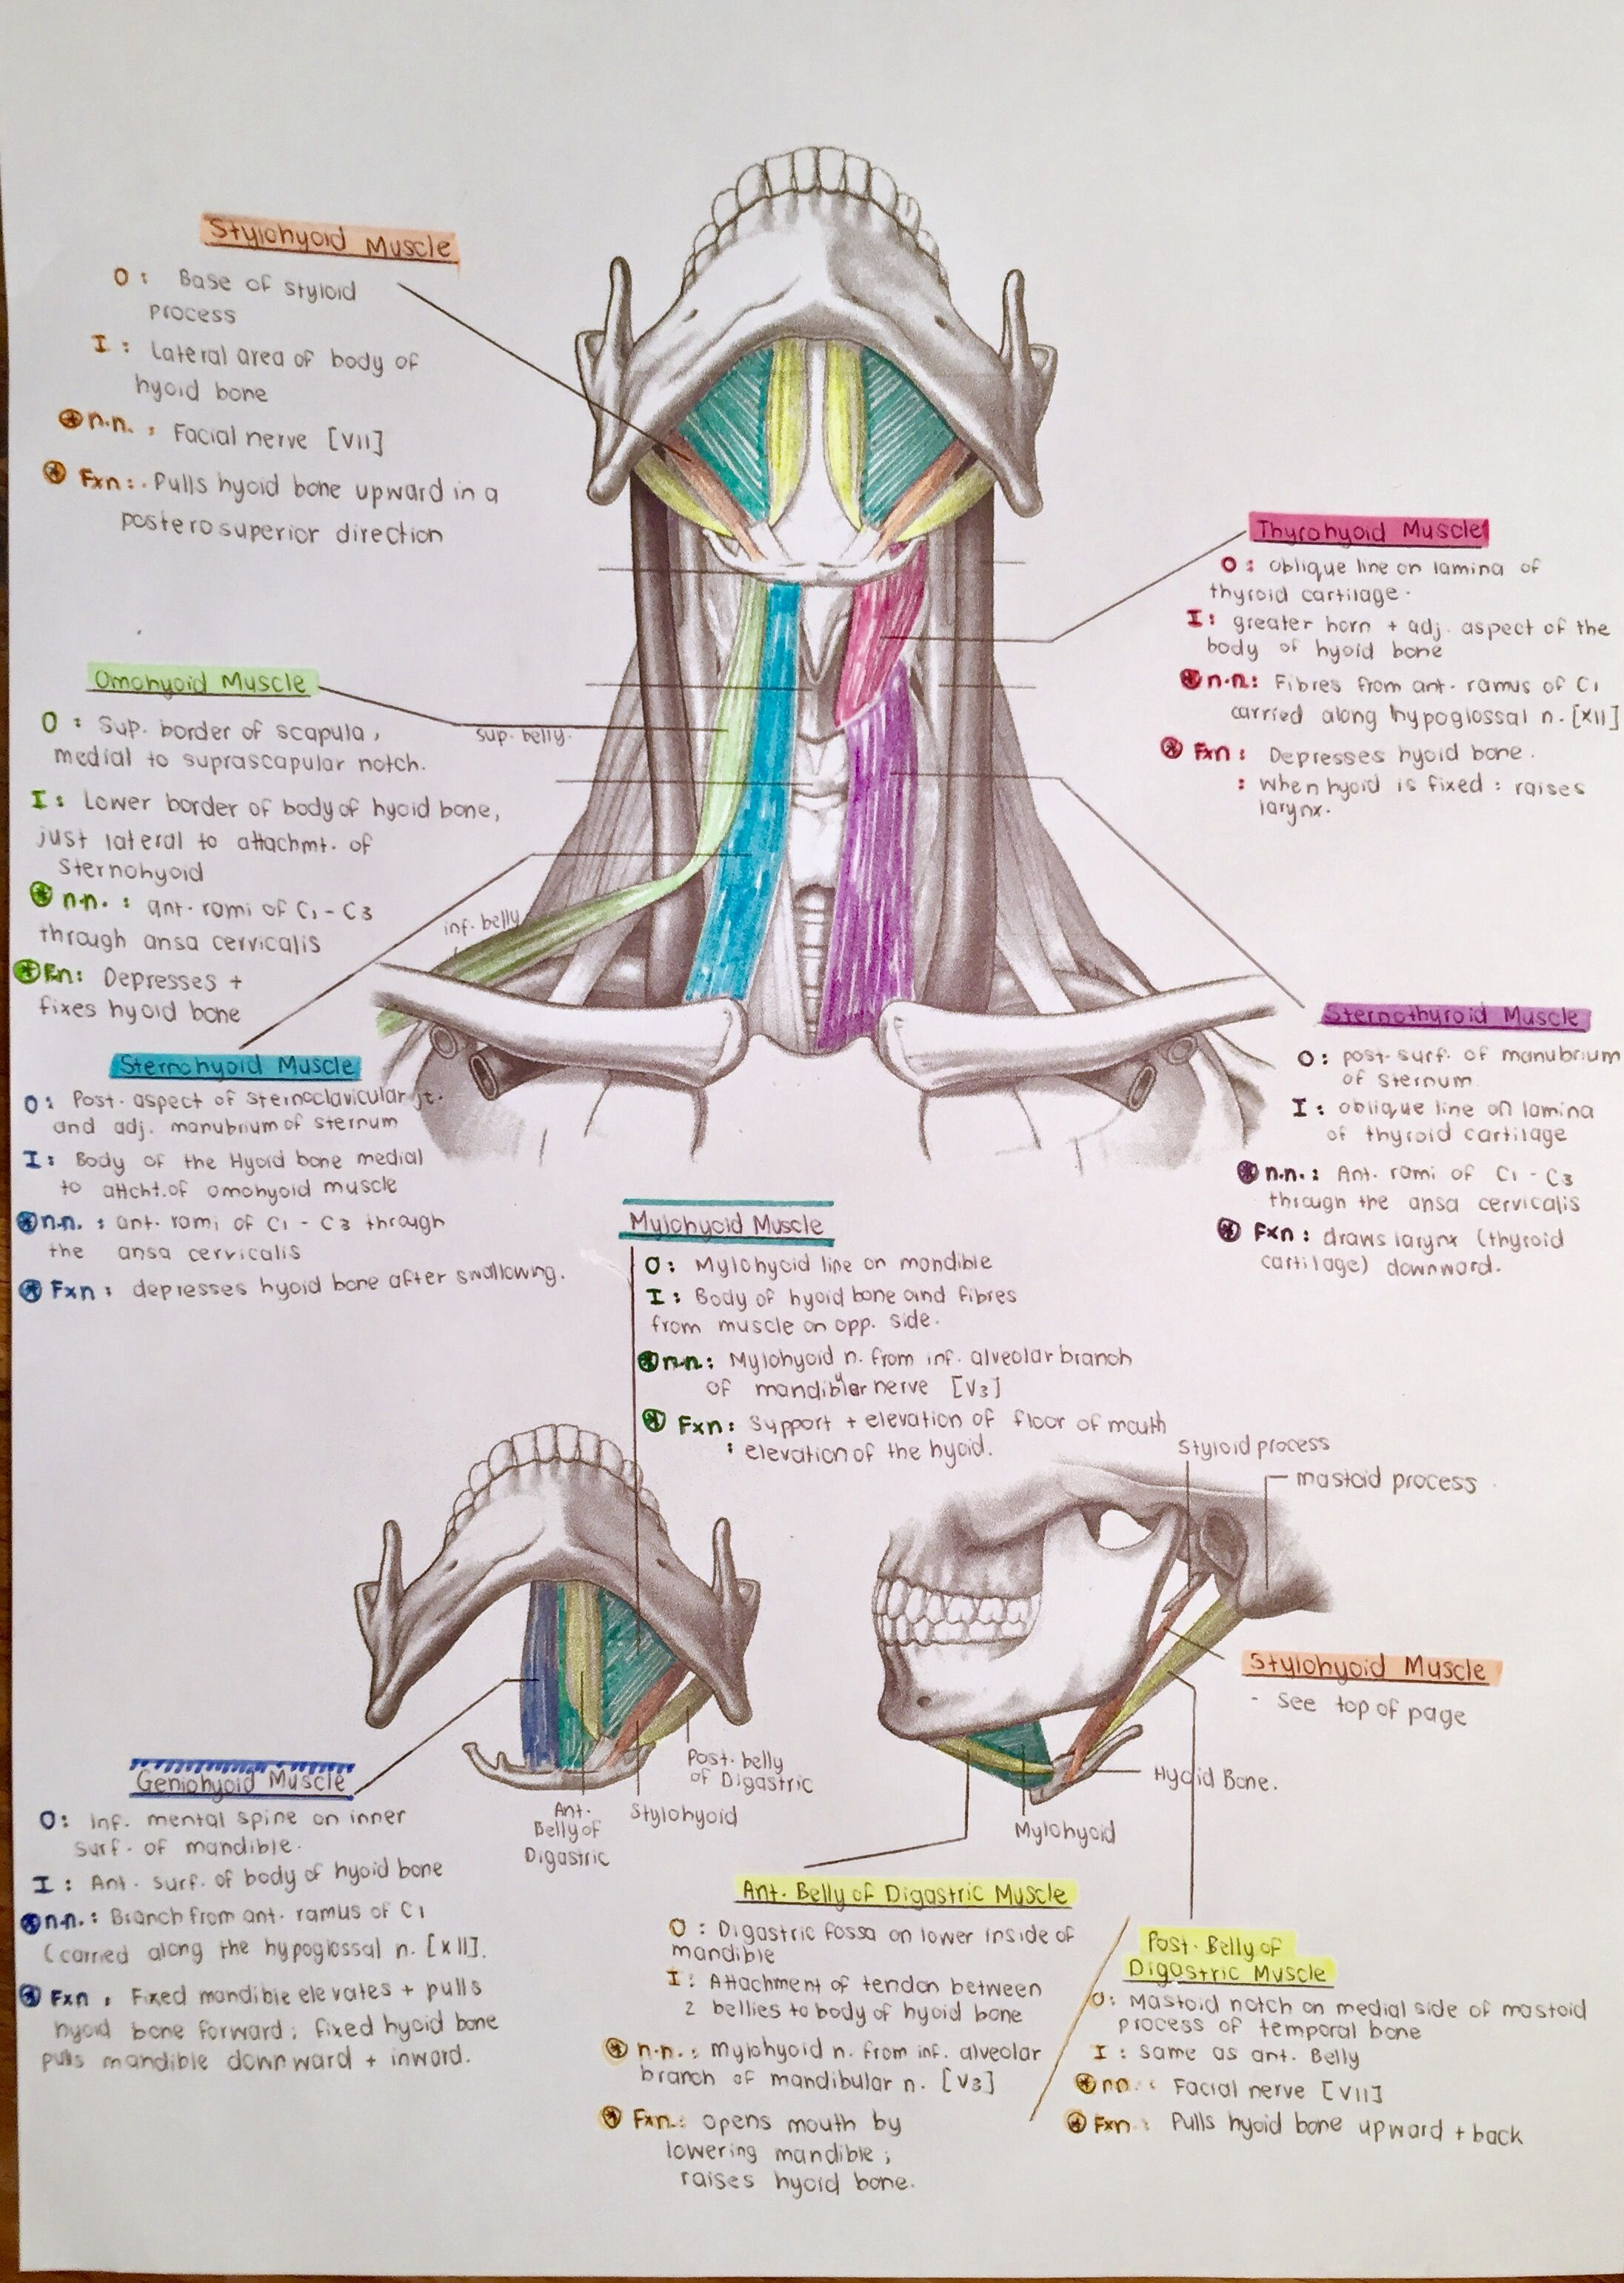 Muscles of the Anterior Triangle of the Neck | Anatomy Notes ...